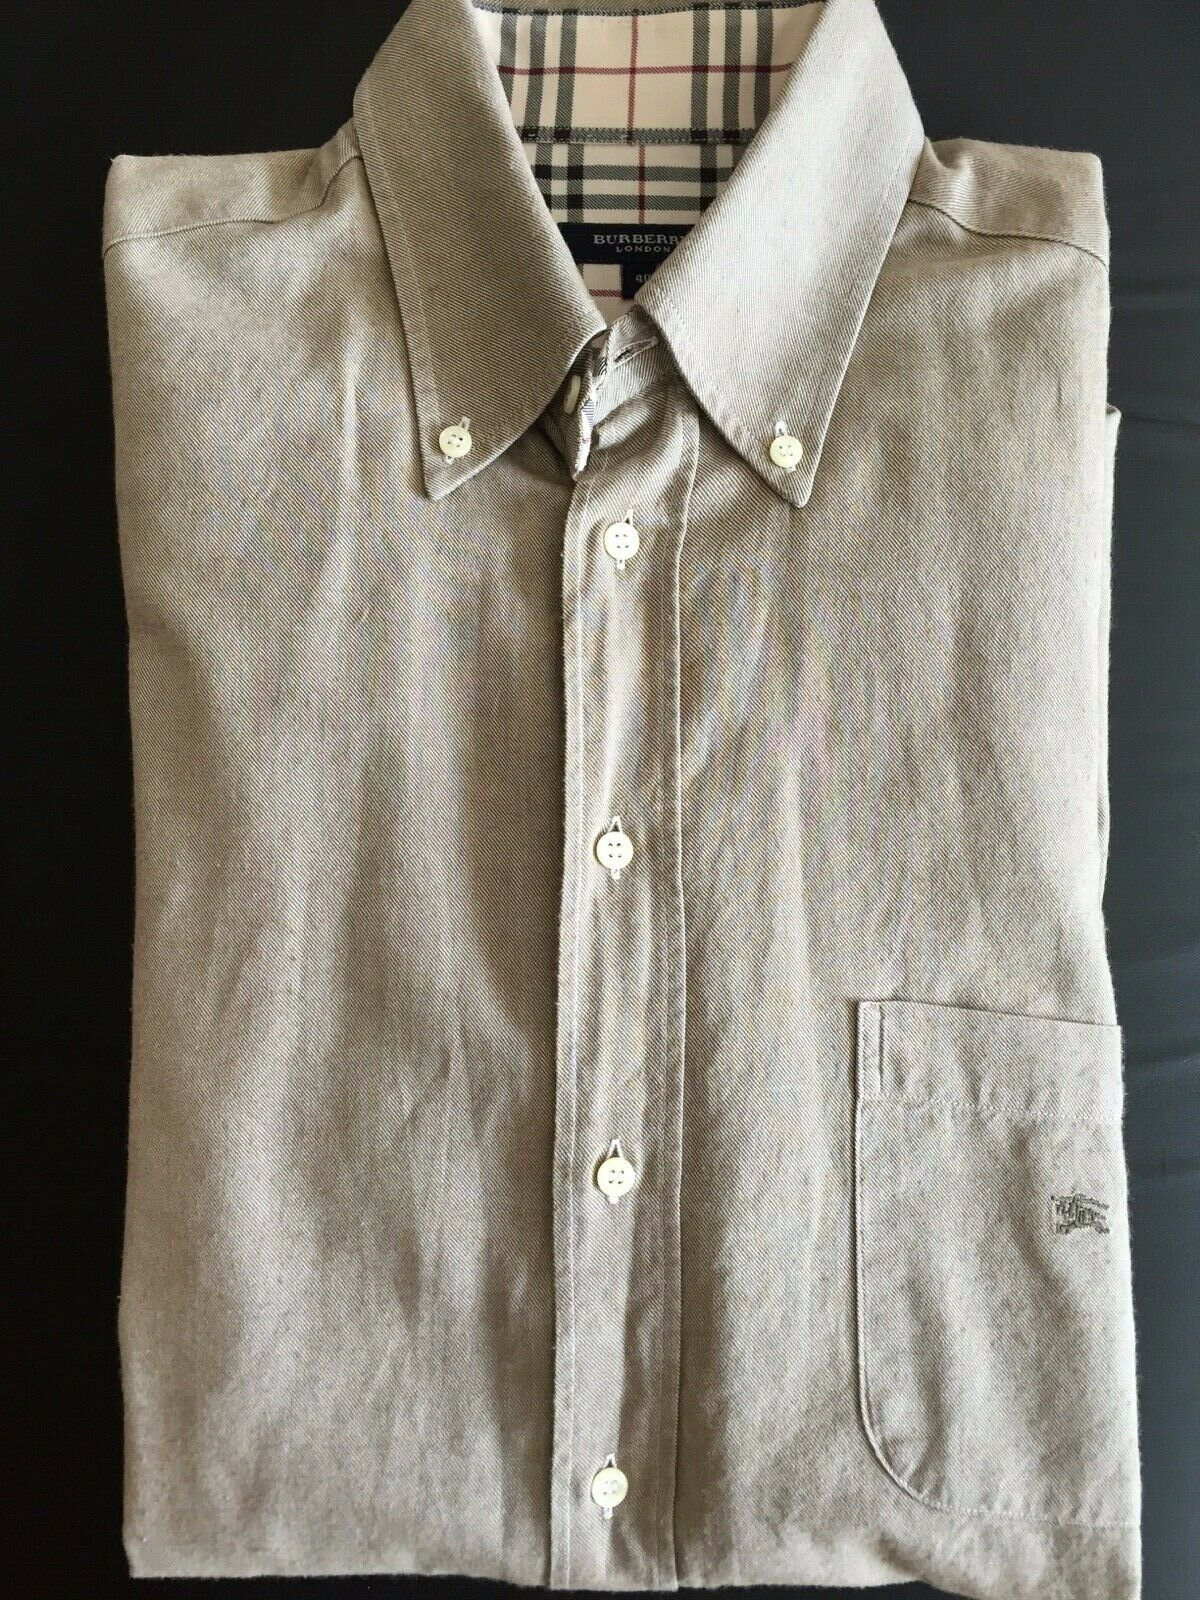 Chemise burberry homme beige taille 40 manches longues